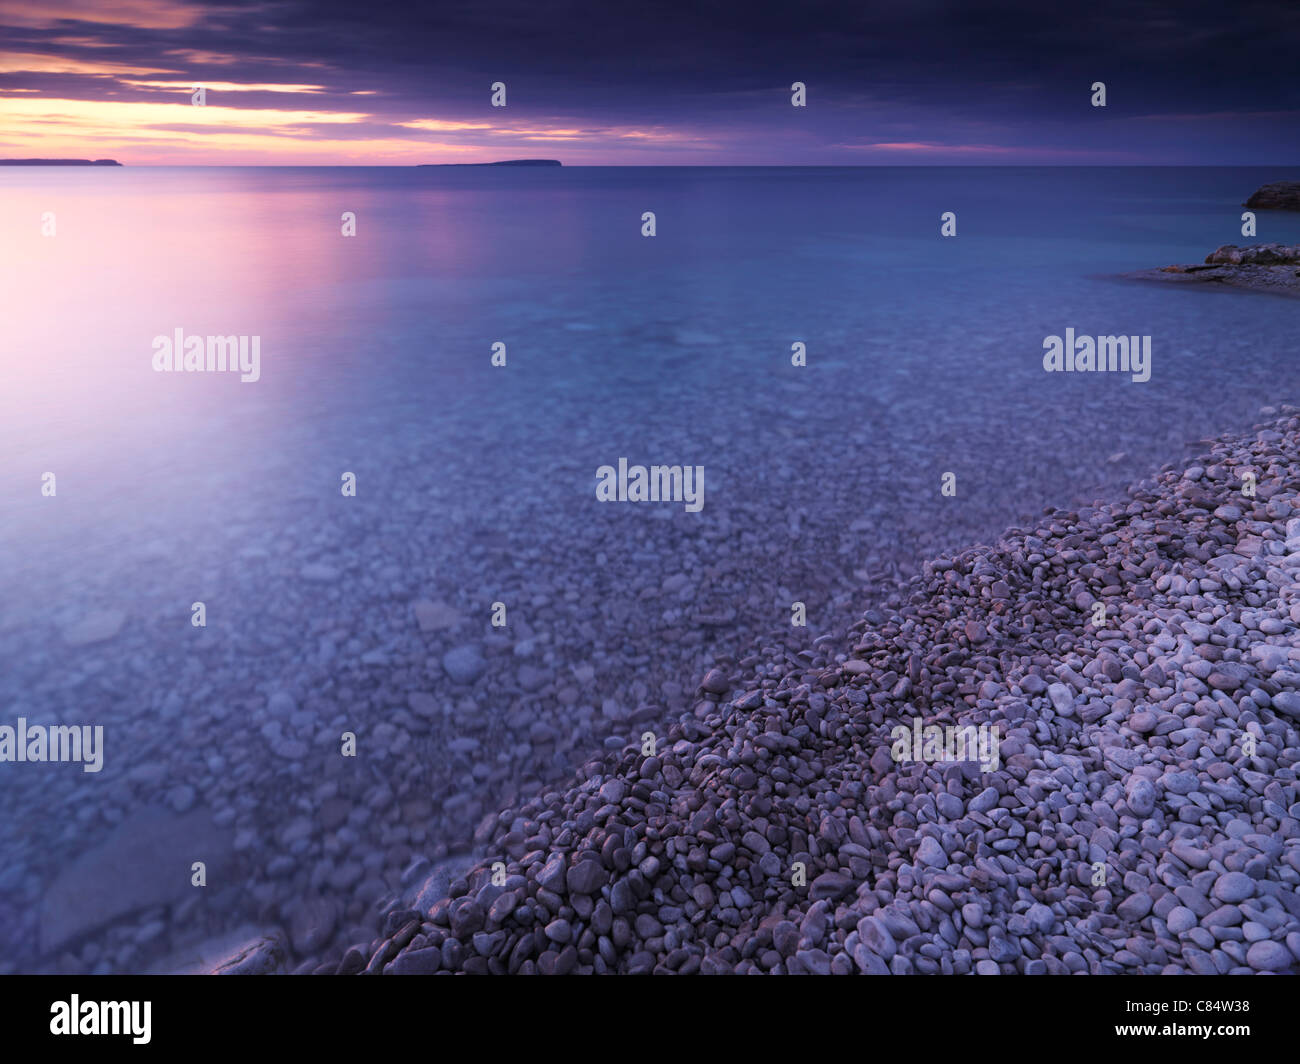 Magnifique coucher de soleil paysage de la Baie Georgienne pebble shore. Parc National de la péninsule Bruce, Photo Stock